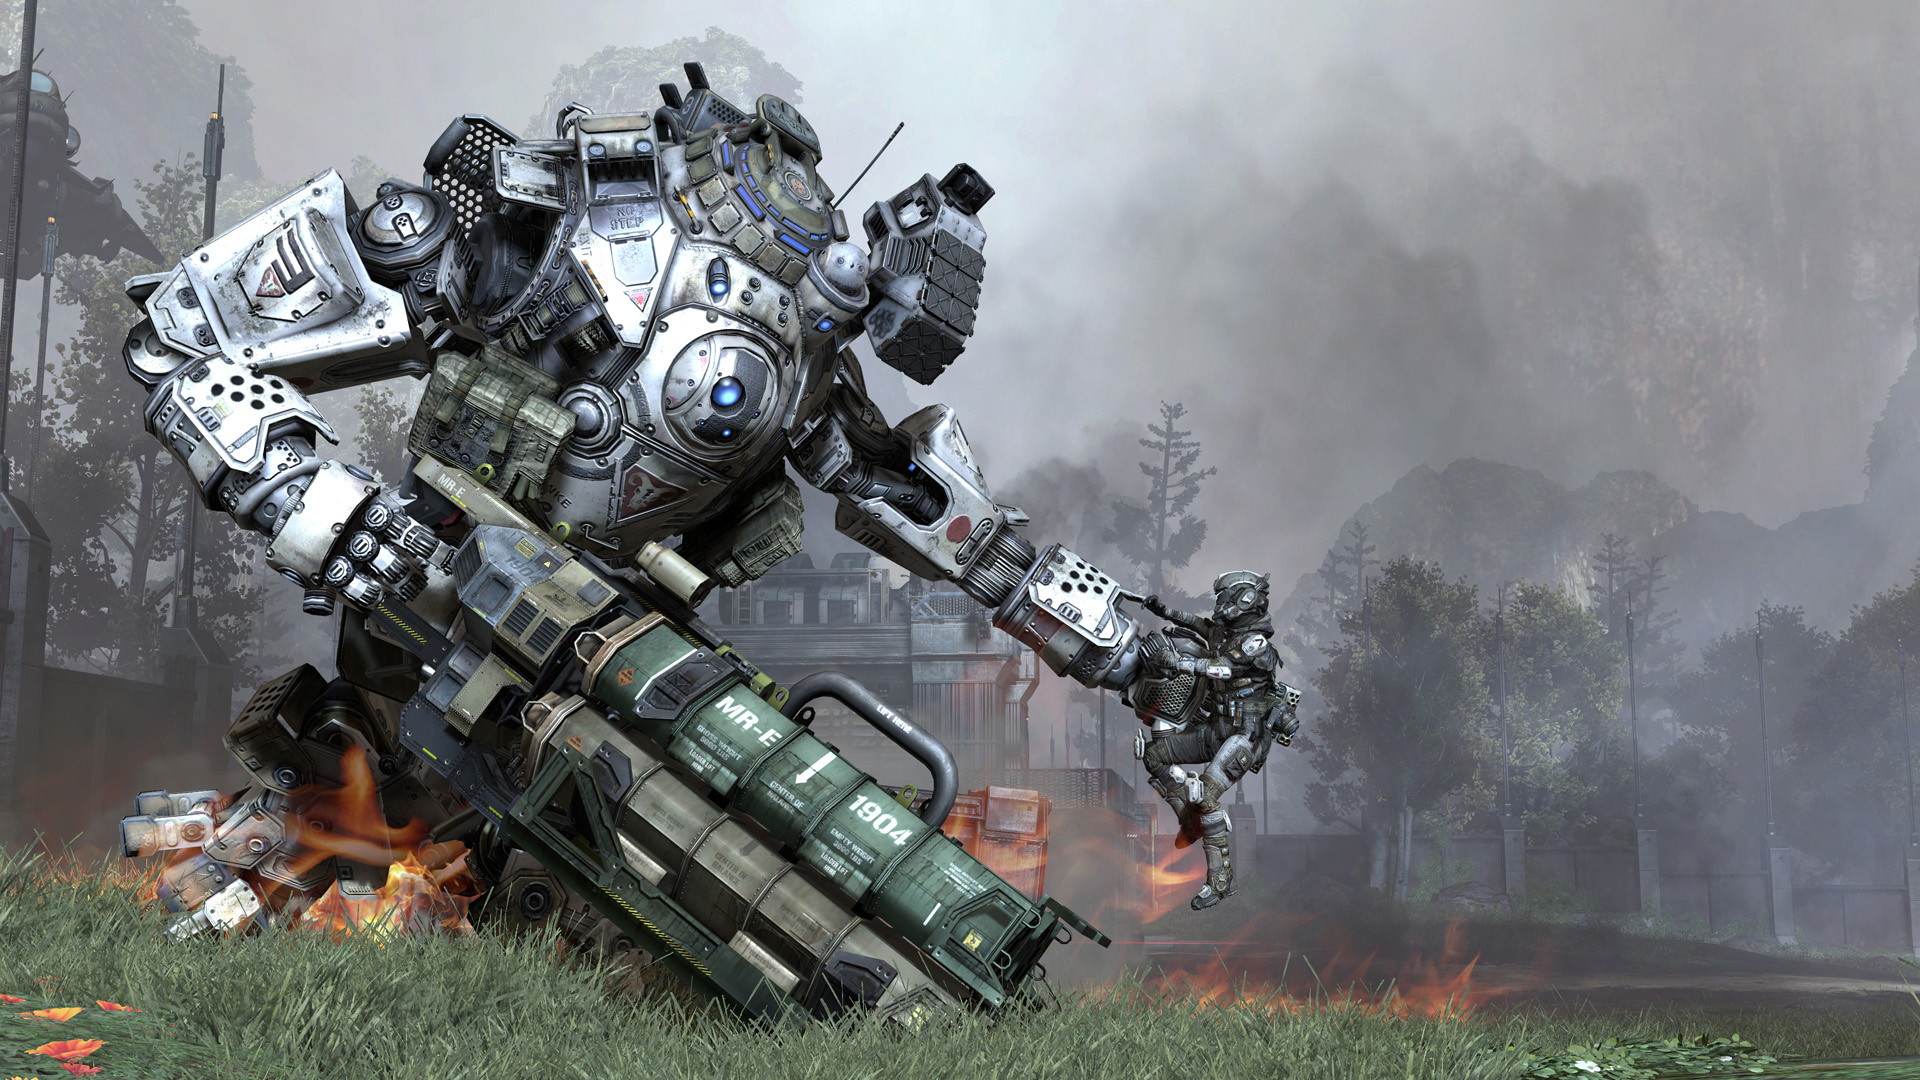 Sponsored Video – Revolutionary FPS TitanFall Comes out March 14th in the UK